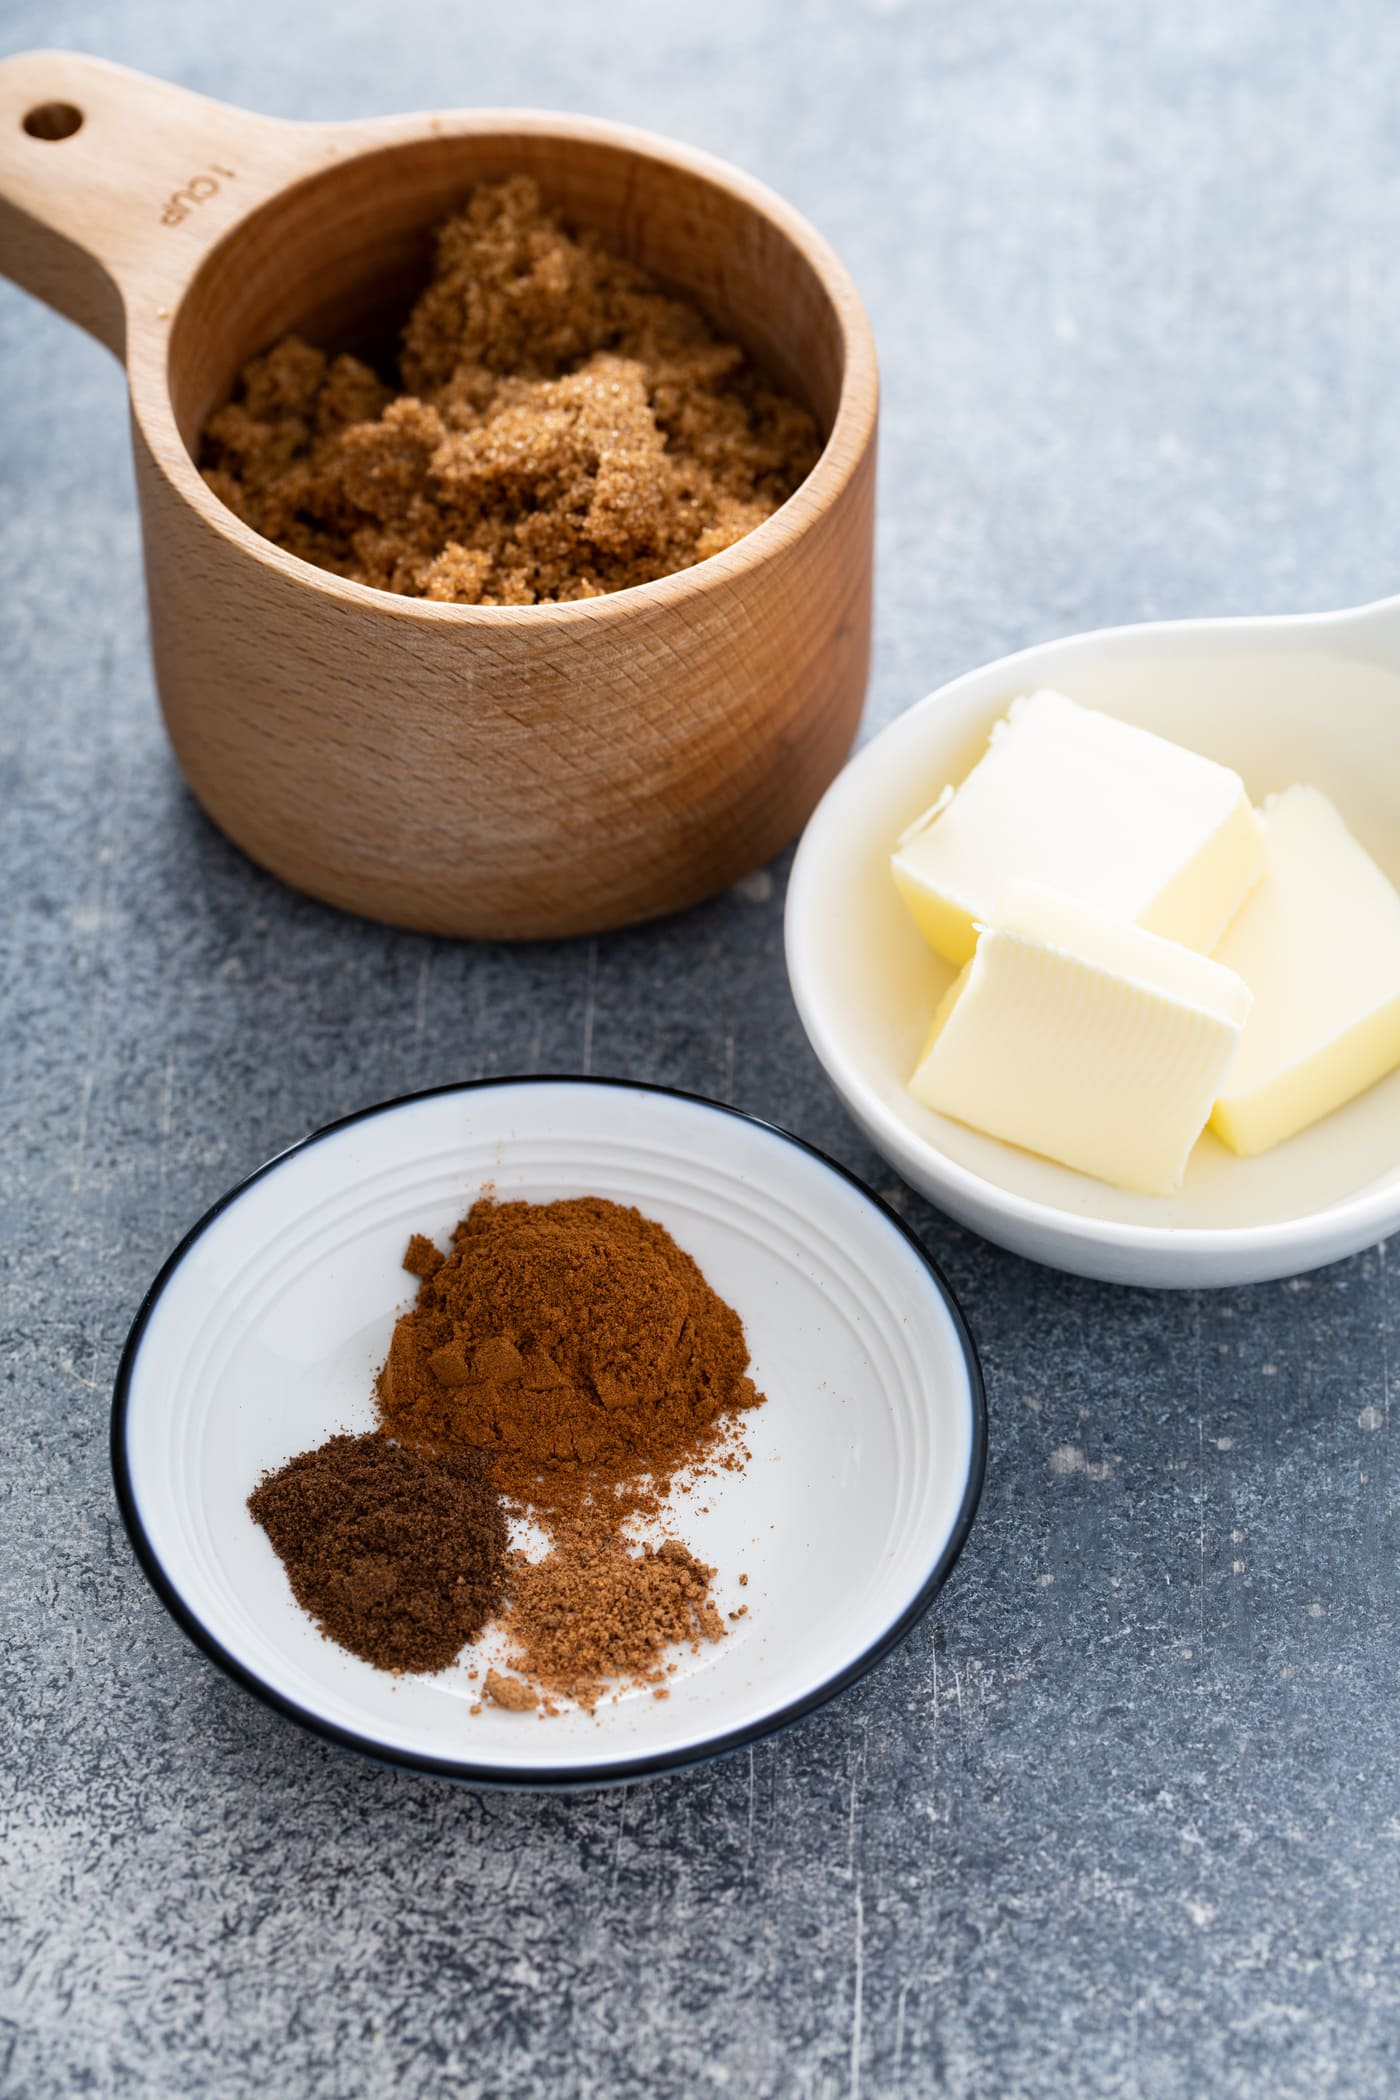 Containers of spices, butter and cinnamon.